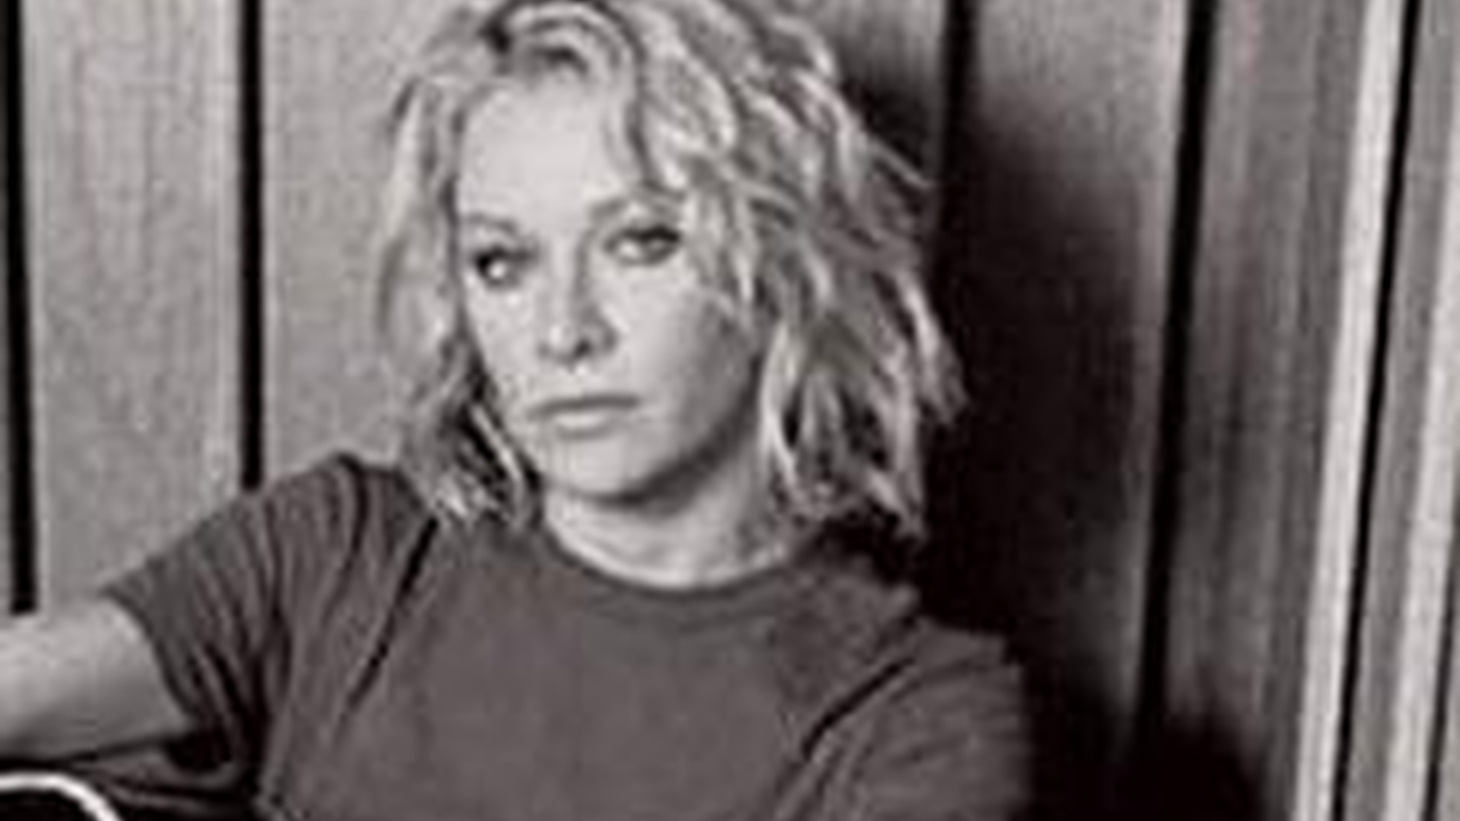 Shelby Lynne returns to play a new batch of songs on Morning Becomes Eclectic at 11:15am.